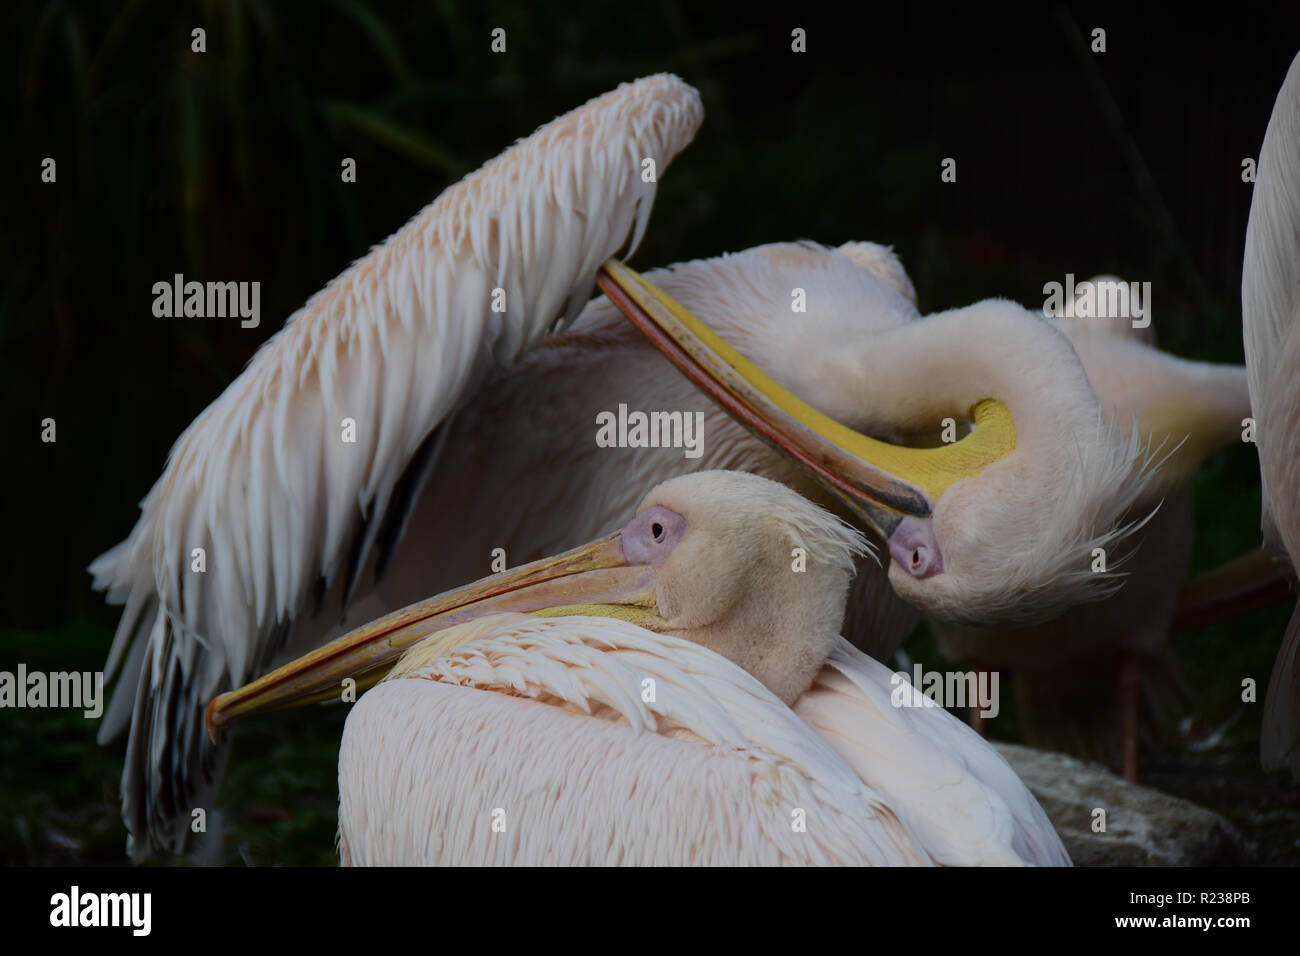 Pelicans with dark background - Stock Image